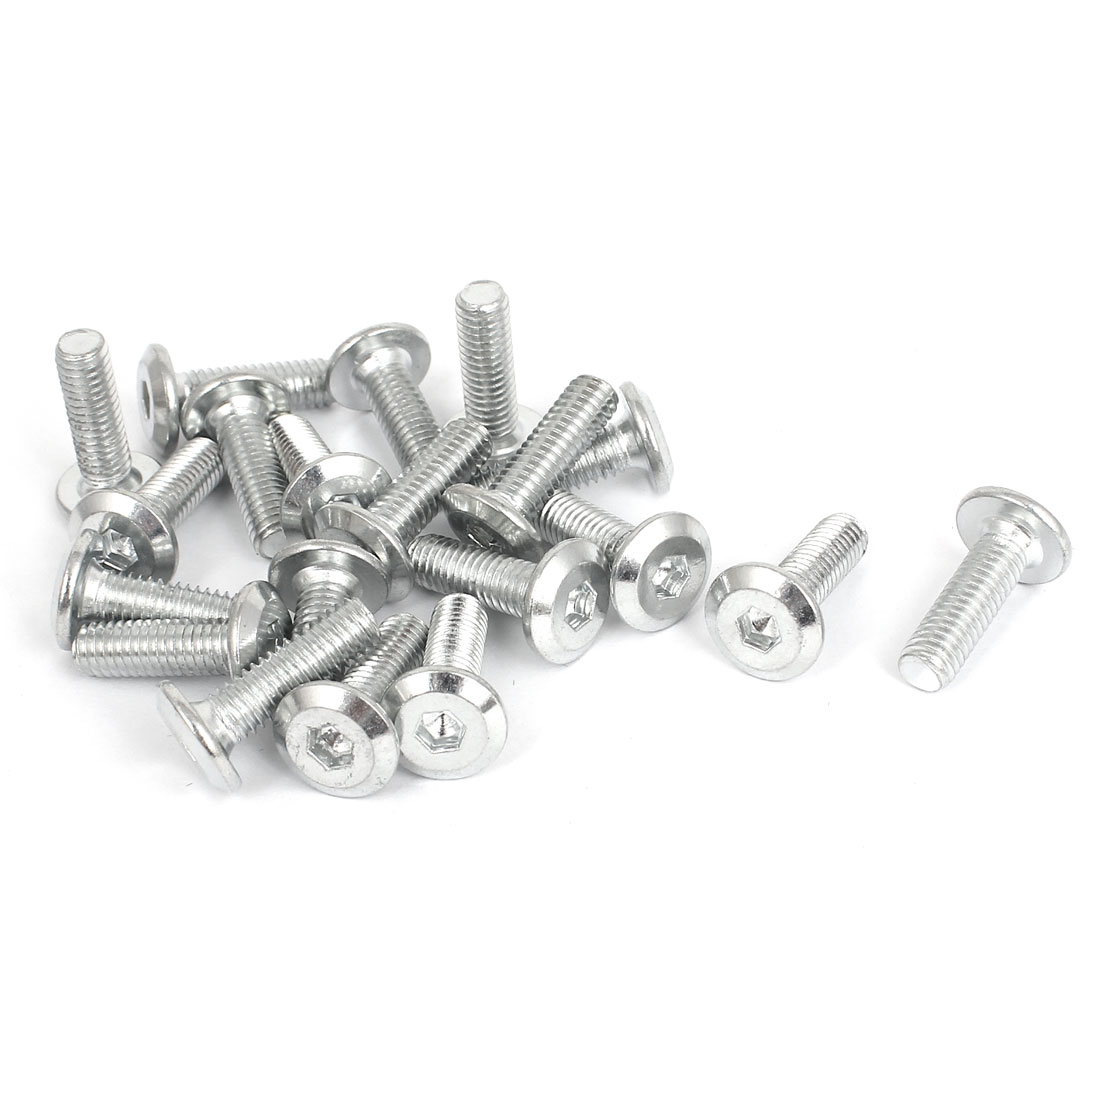 20 Pcs Countersunk Flat Head Hex Key Socket Bolts Screws Fasteners M6 x 20mm